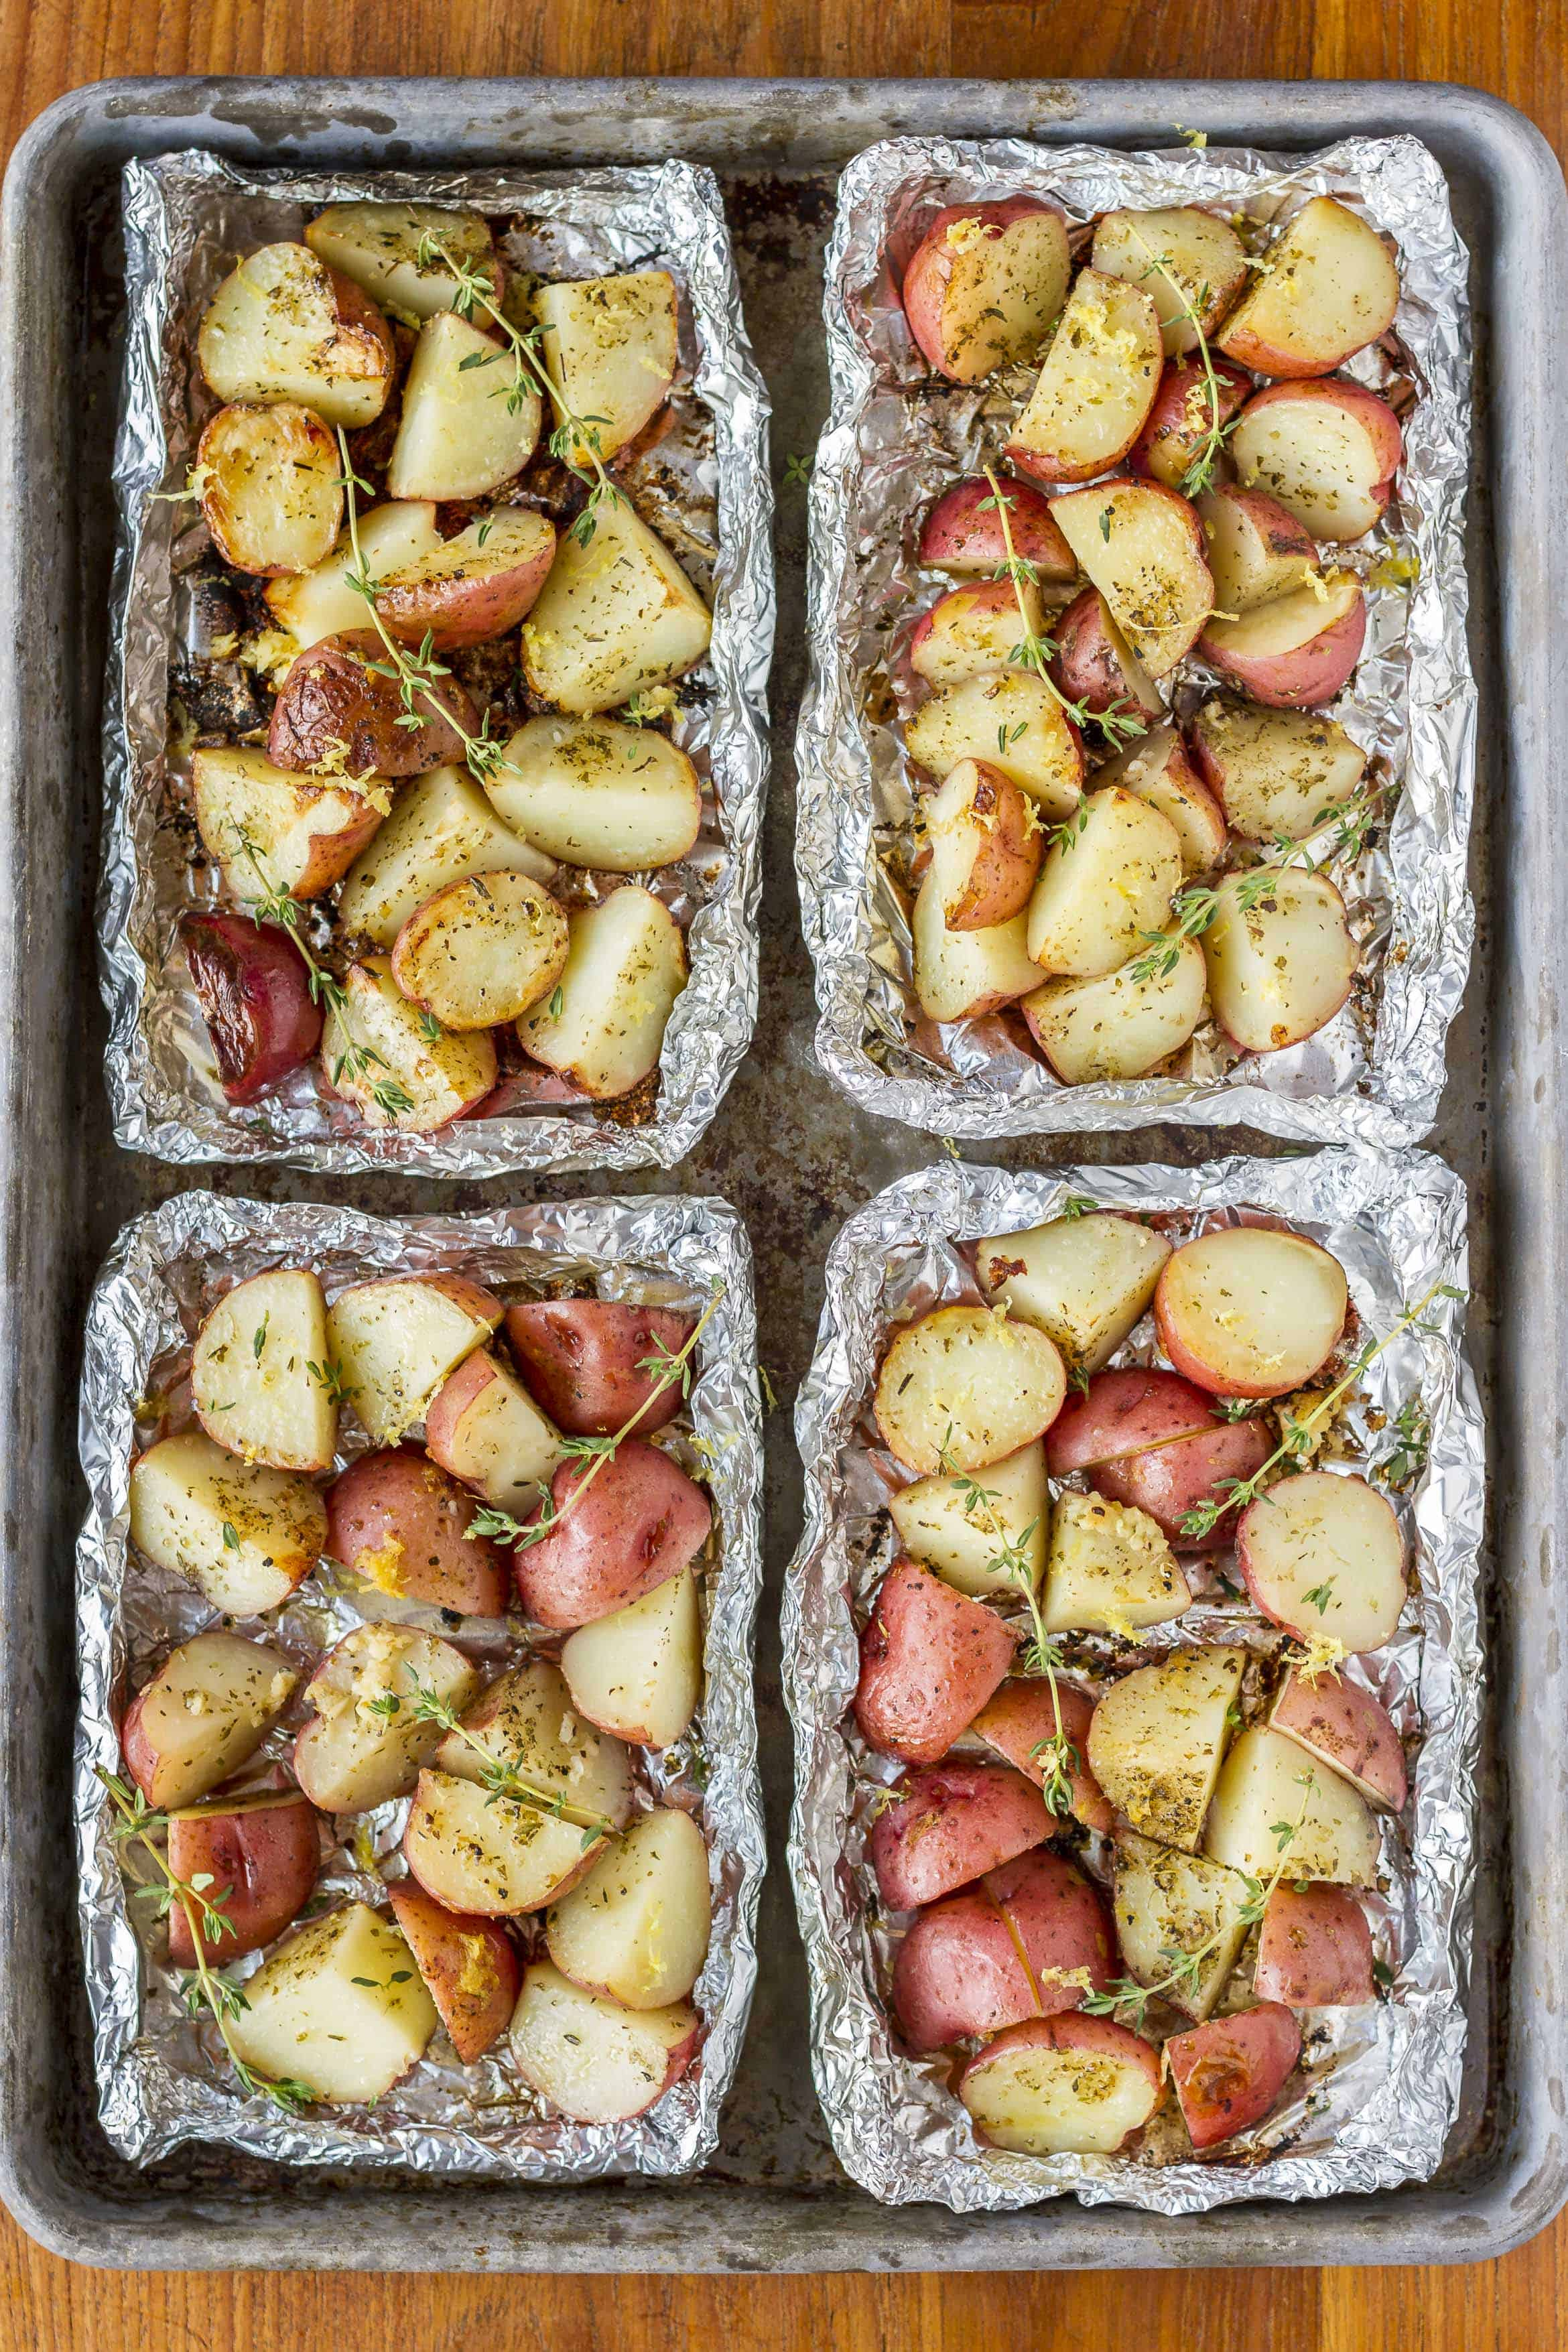 Grilled Potatoes In Foil -- with just 5 ingredients, these grilled potatoes in foil packets have everything going for them: quick, easy, delicious, and virtually mess-free… AND they're Whole30 compliant! | whole30 potatoes | potatoes in foil in oven | potatoes in foil packets | baked potatoes in foil | campfire potatoes | get the recipe on unsophisticook.com